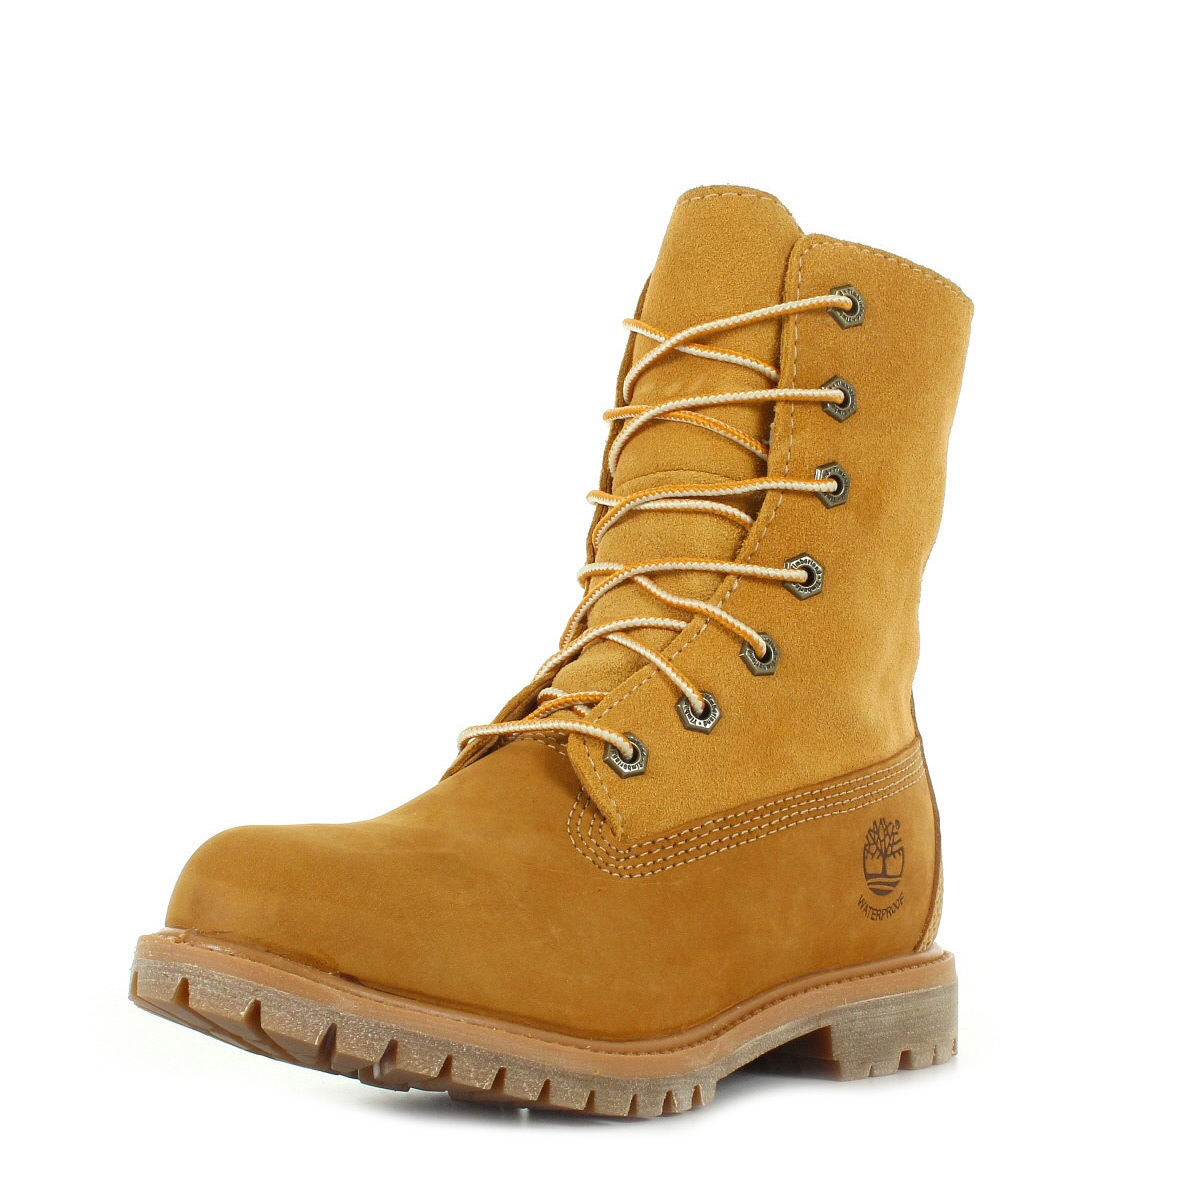 Timberland Auth Teddy Fleece Wp Whea 403HR8R